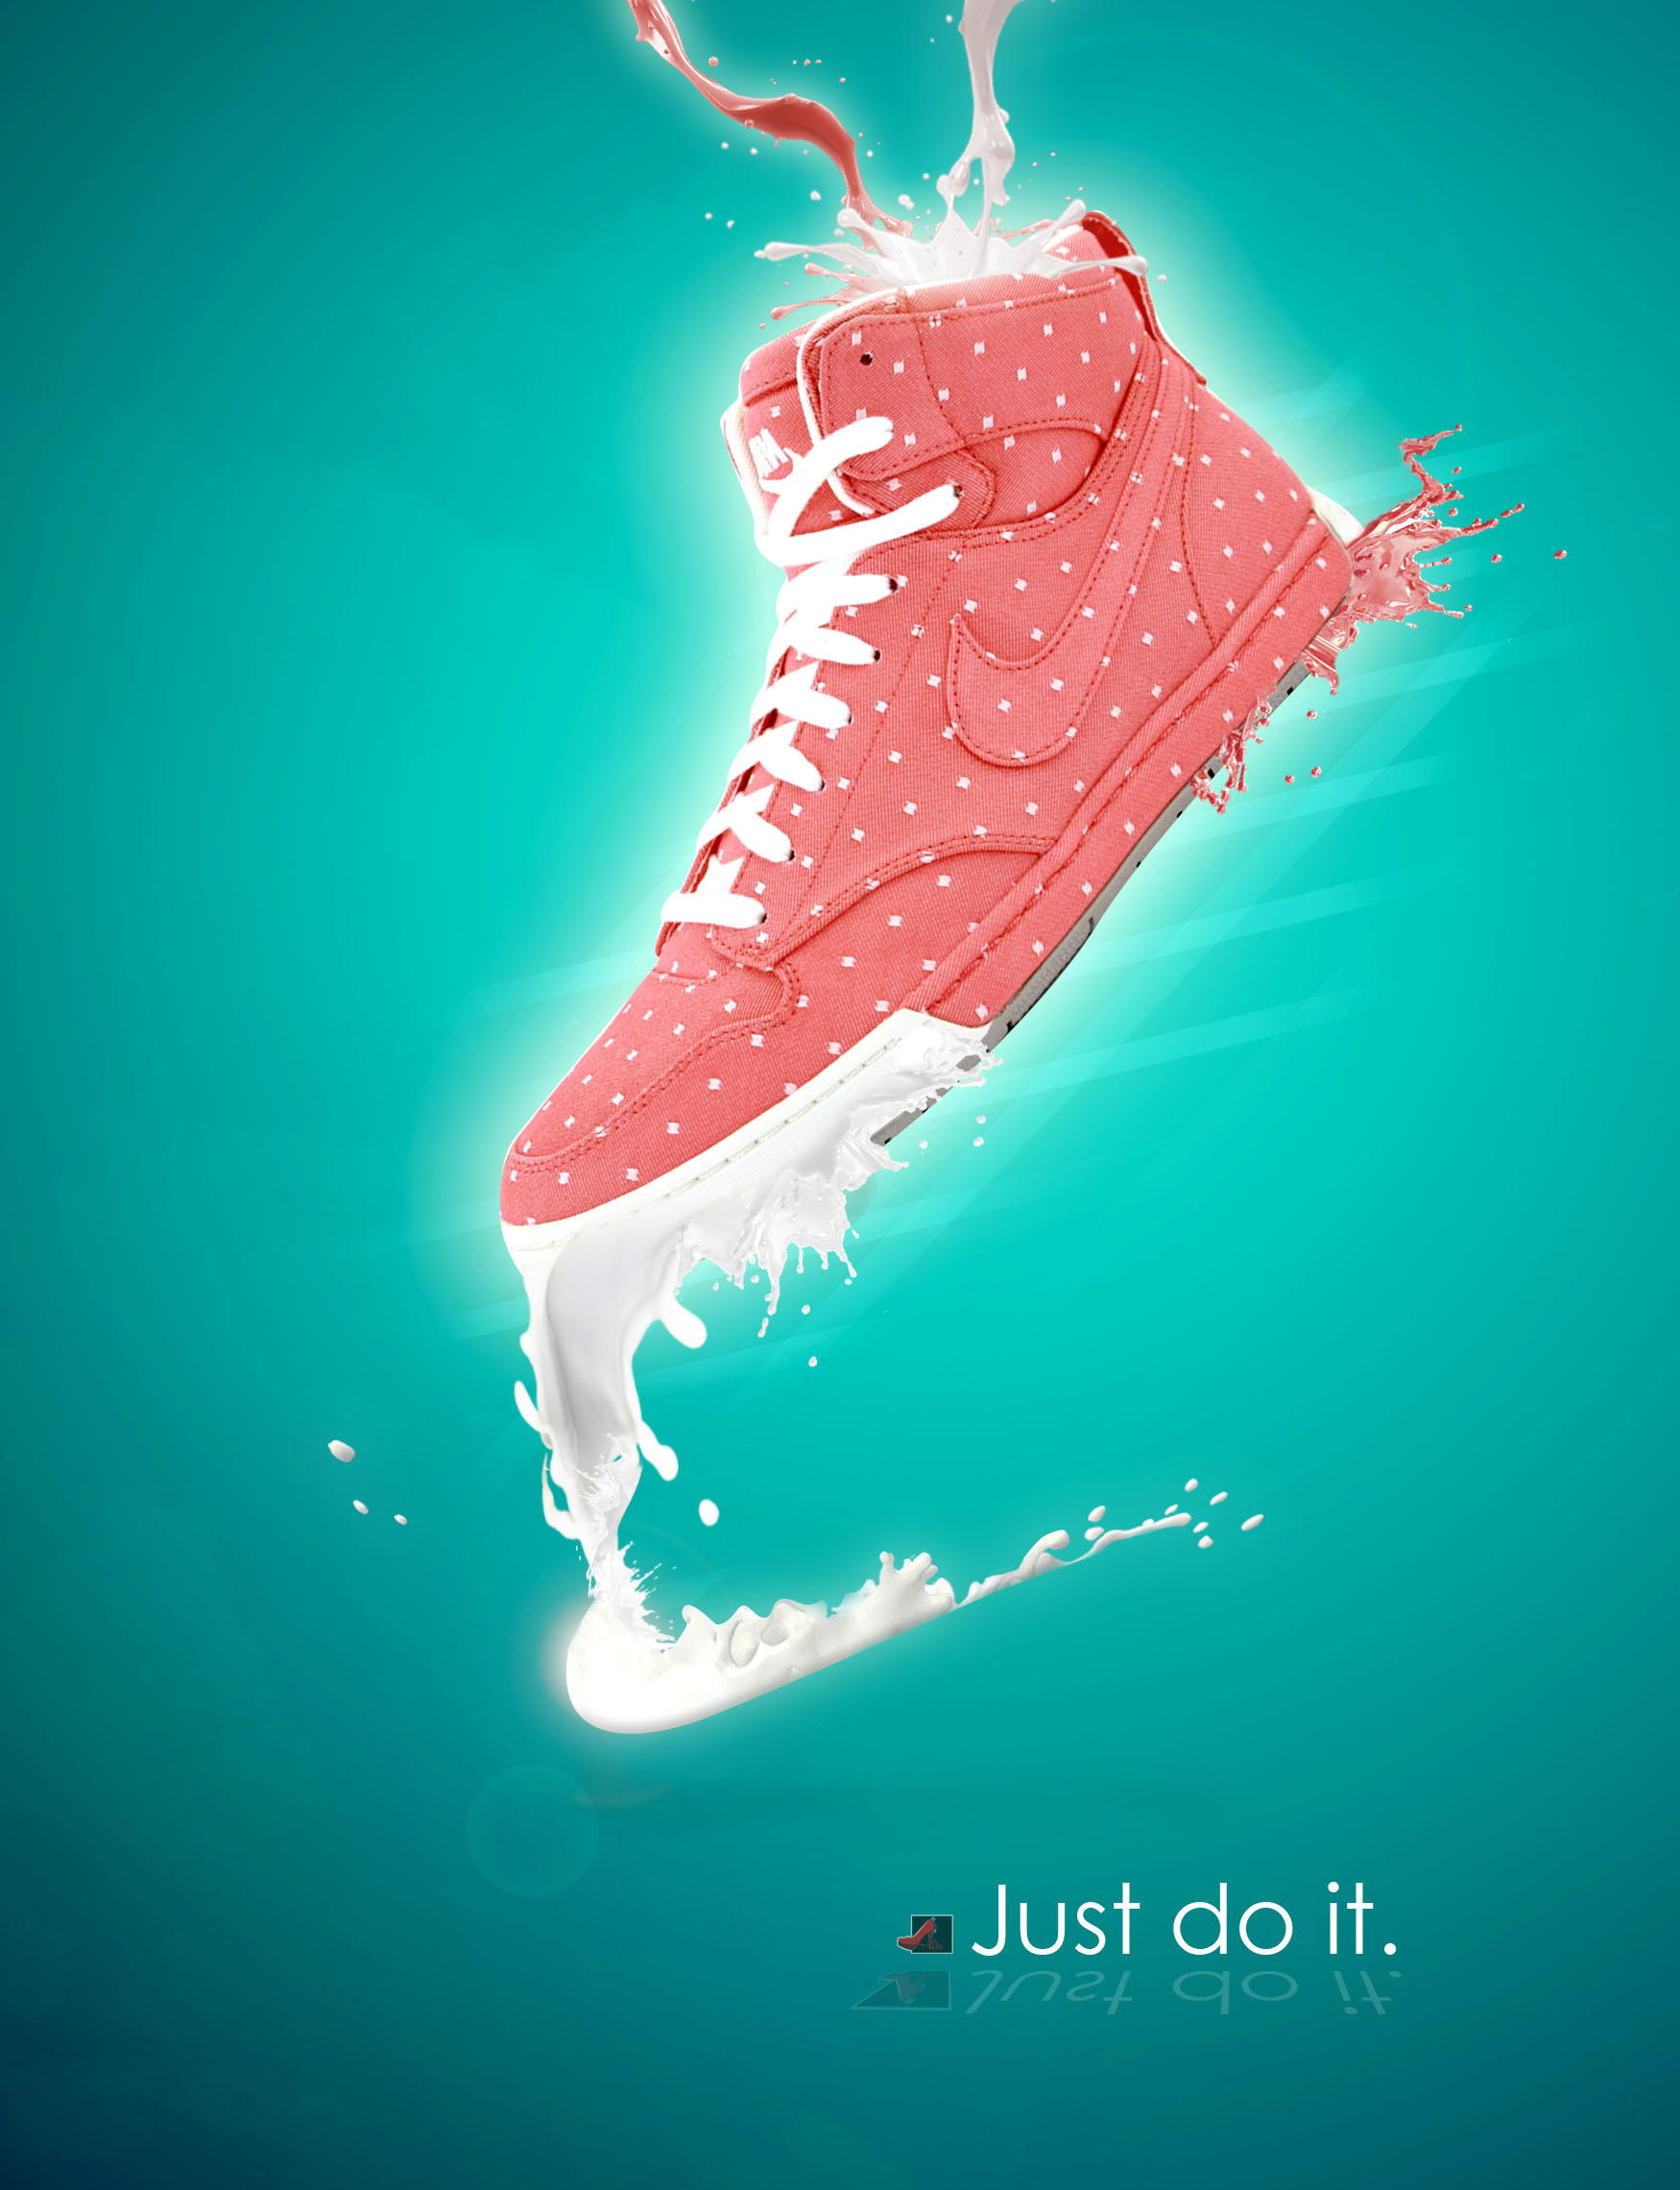 Nike Ad by High-Heels-Ads on DeviantArt